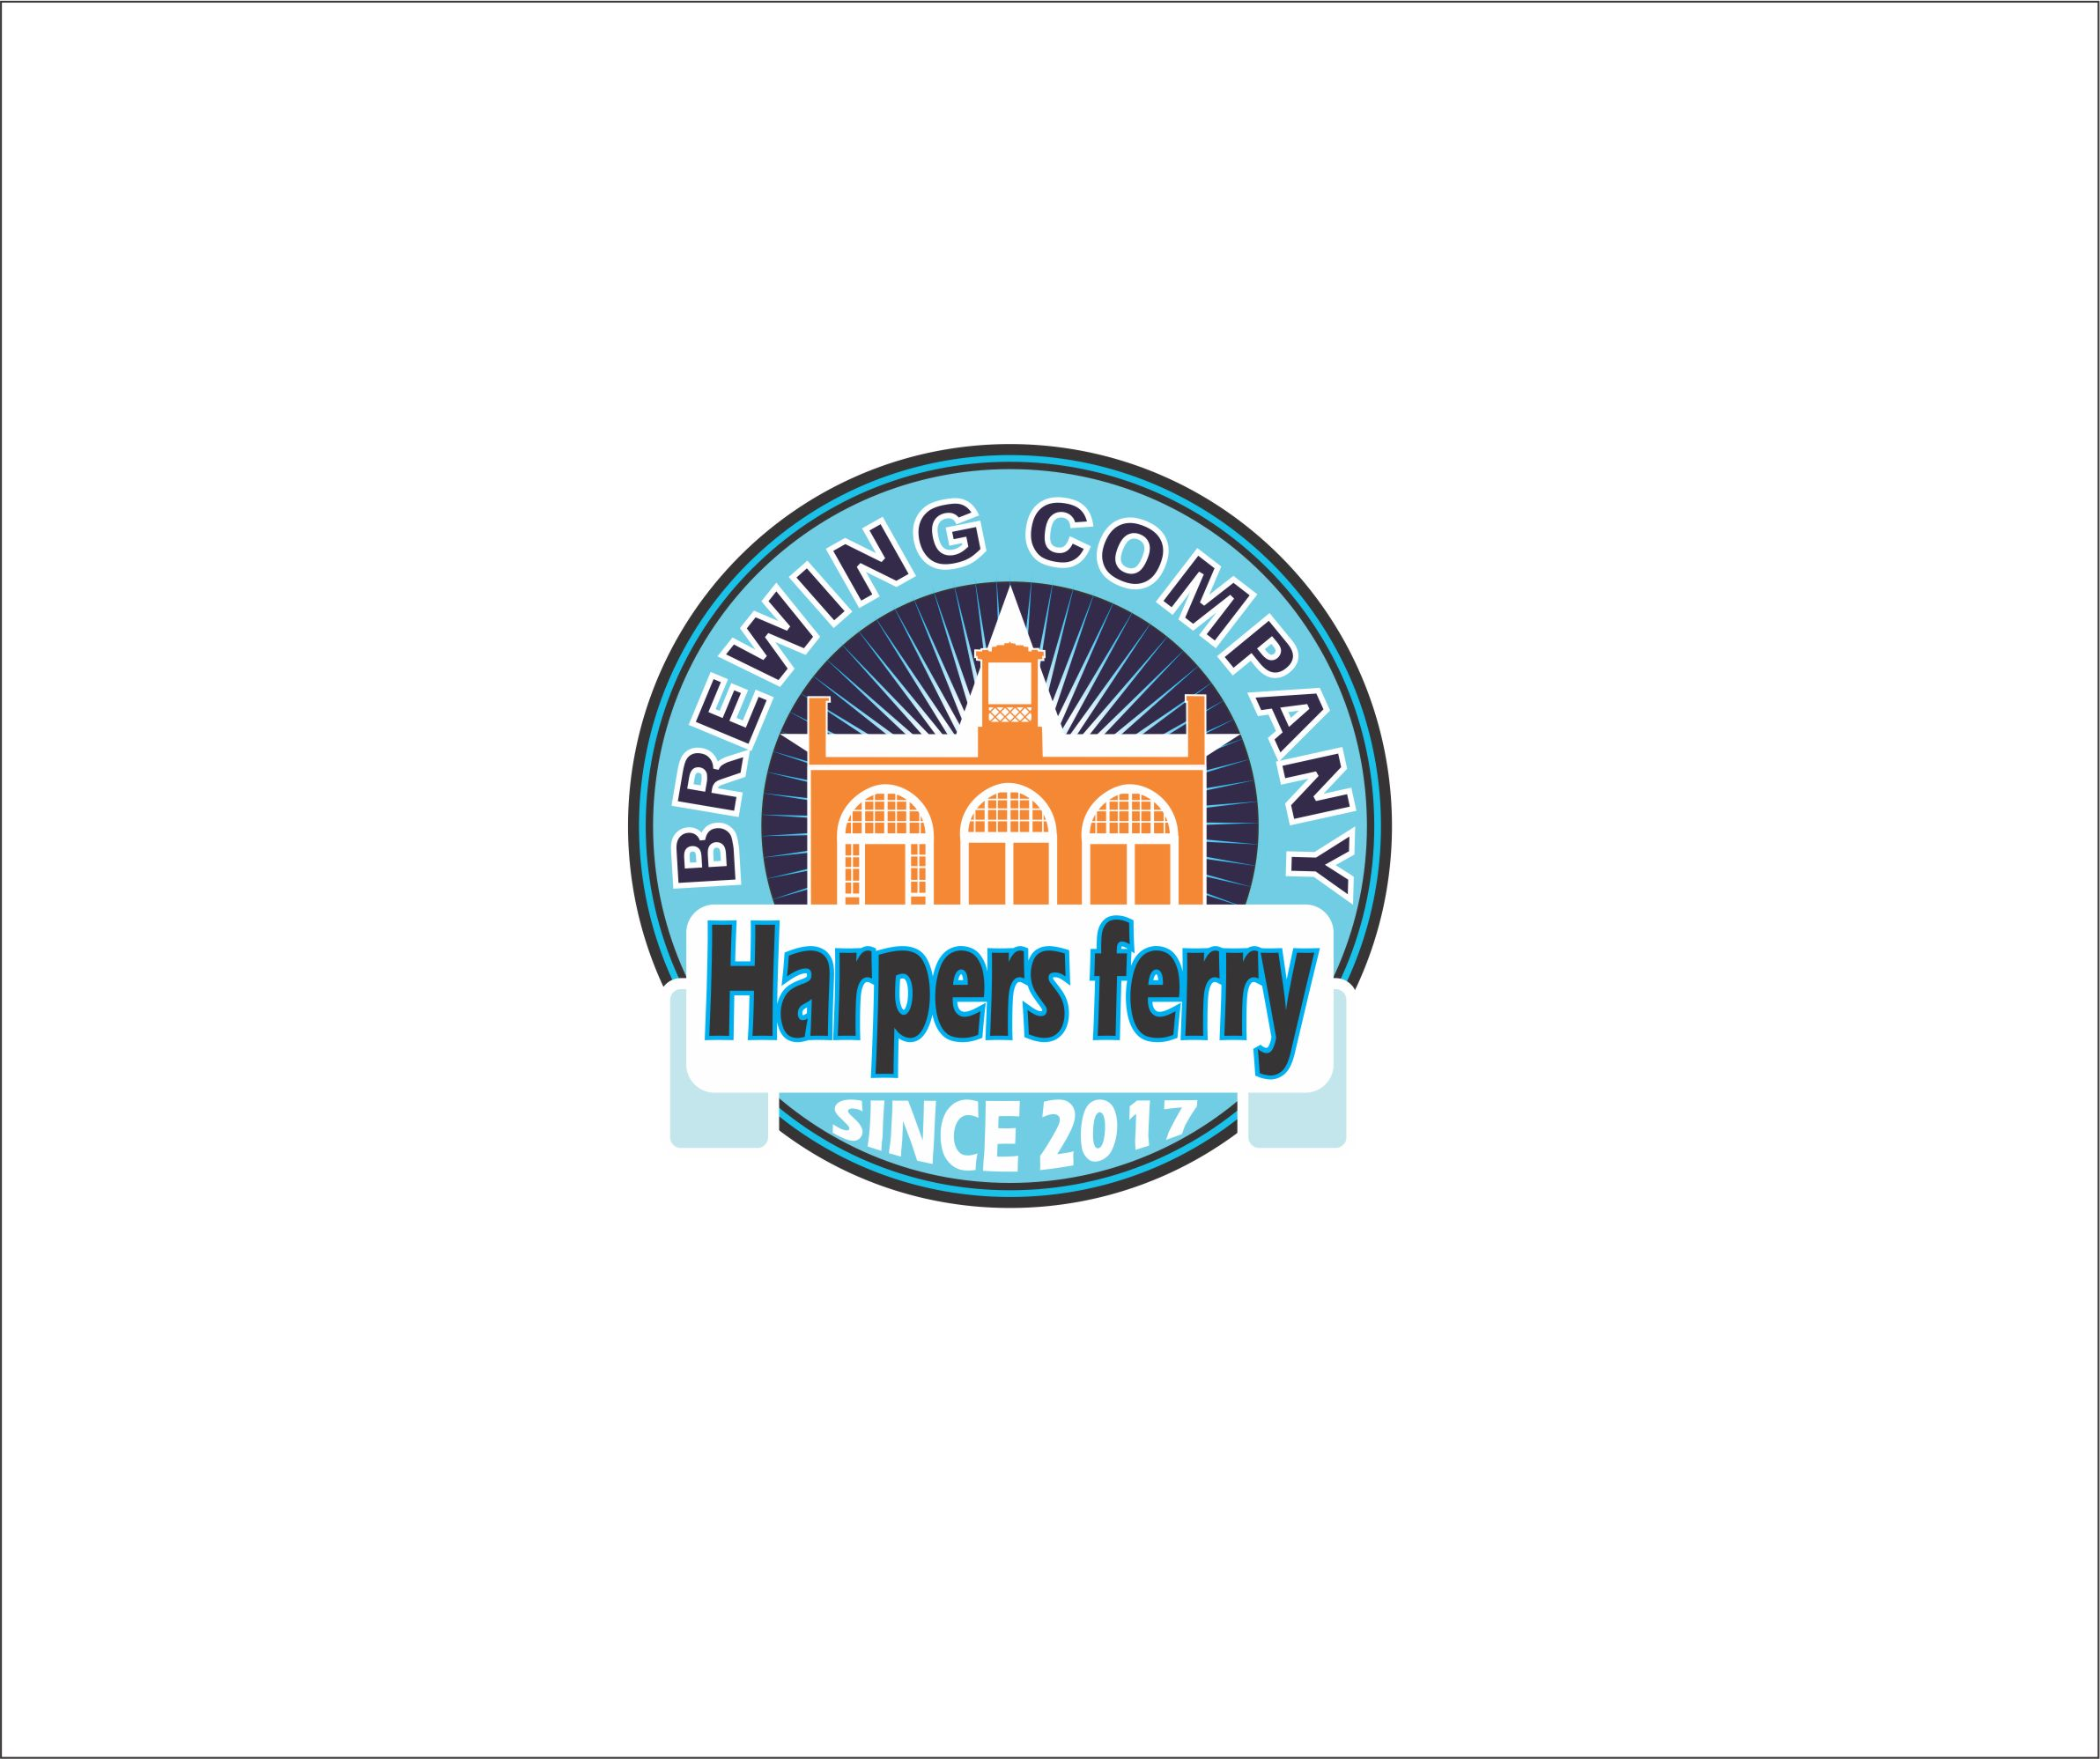 Logo Design by Nikola Kapunac - Entry No. 128 in the Logo Design Contest Unique Logo Design Wanted for Harpers ferry brewing company.